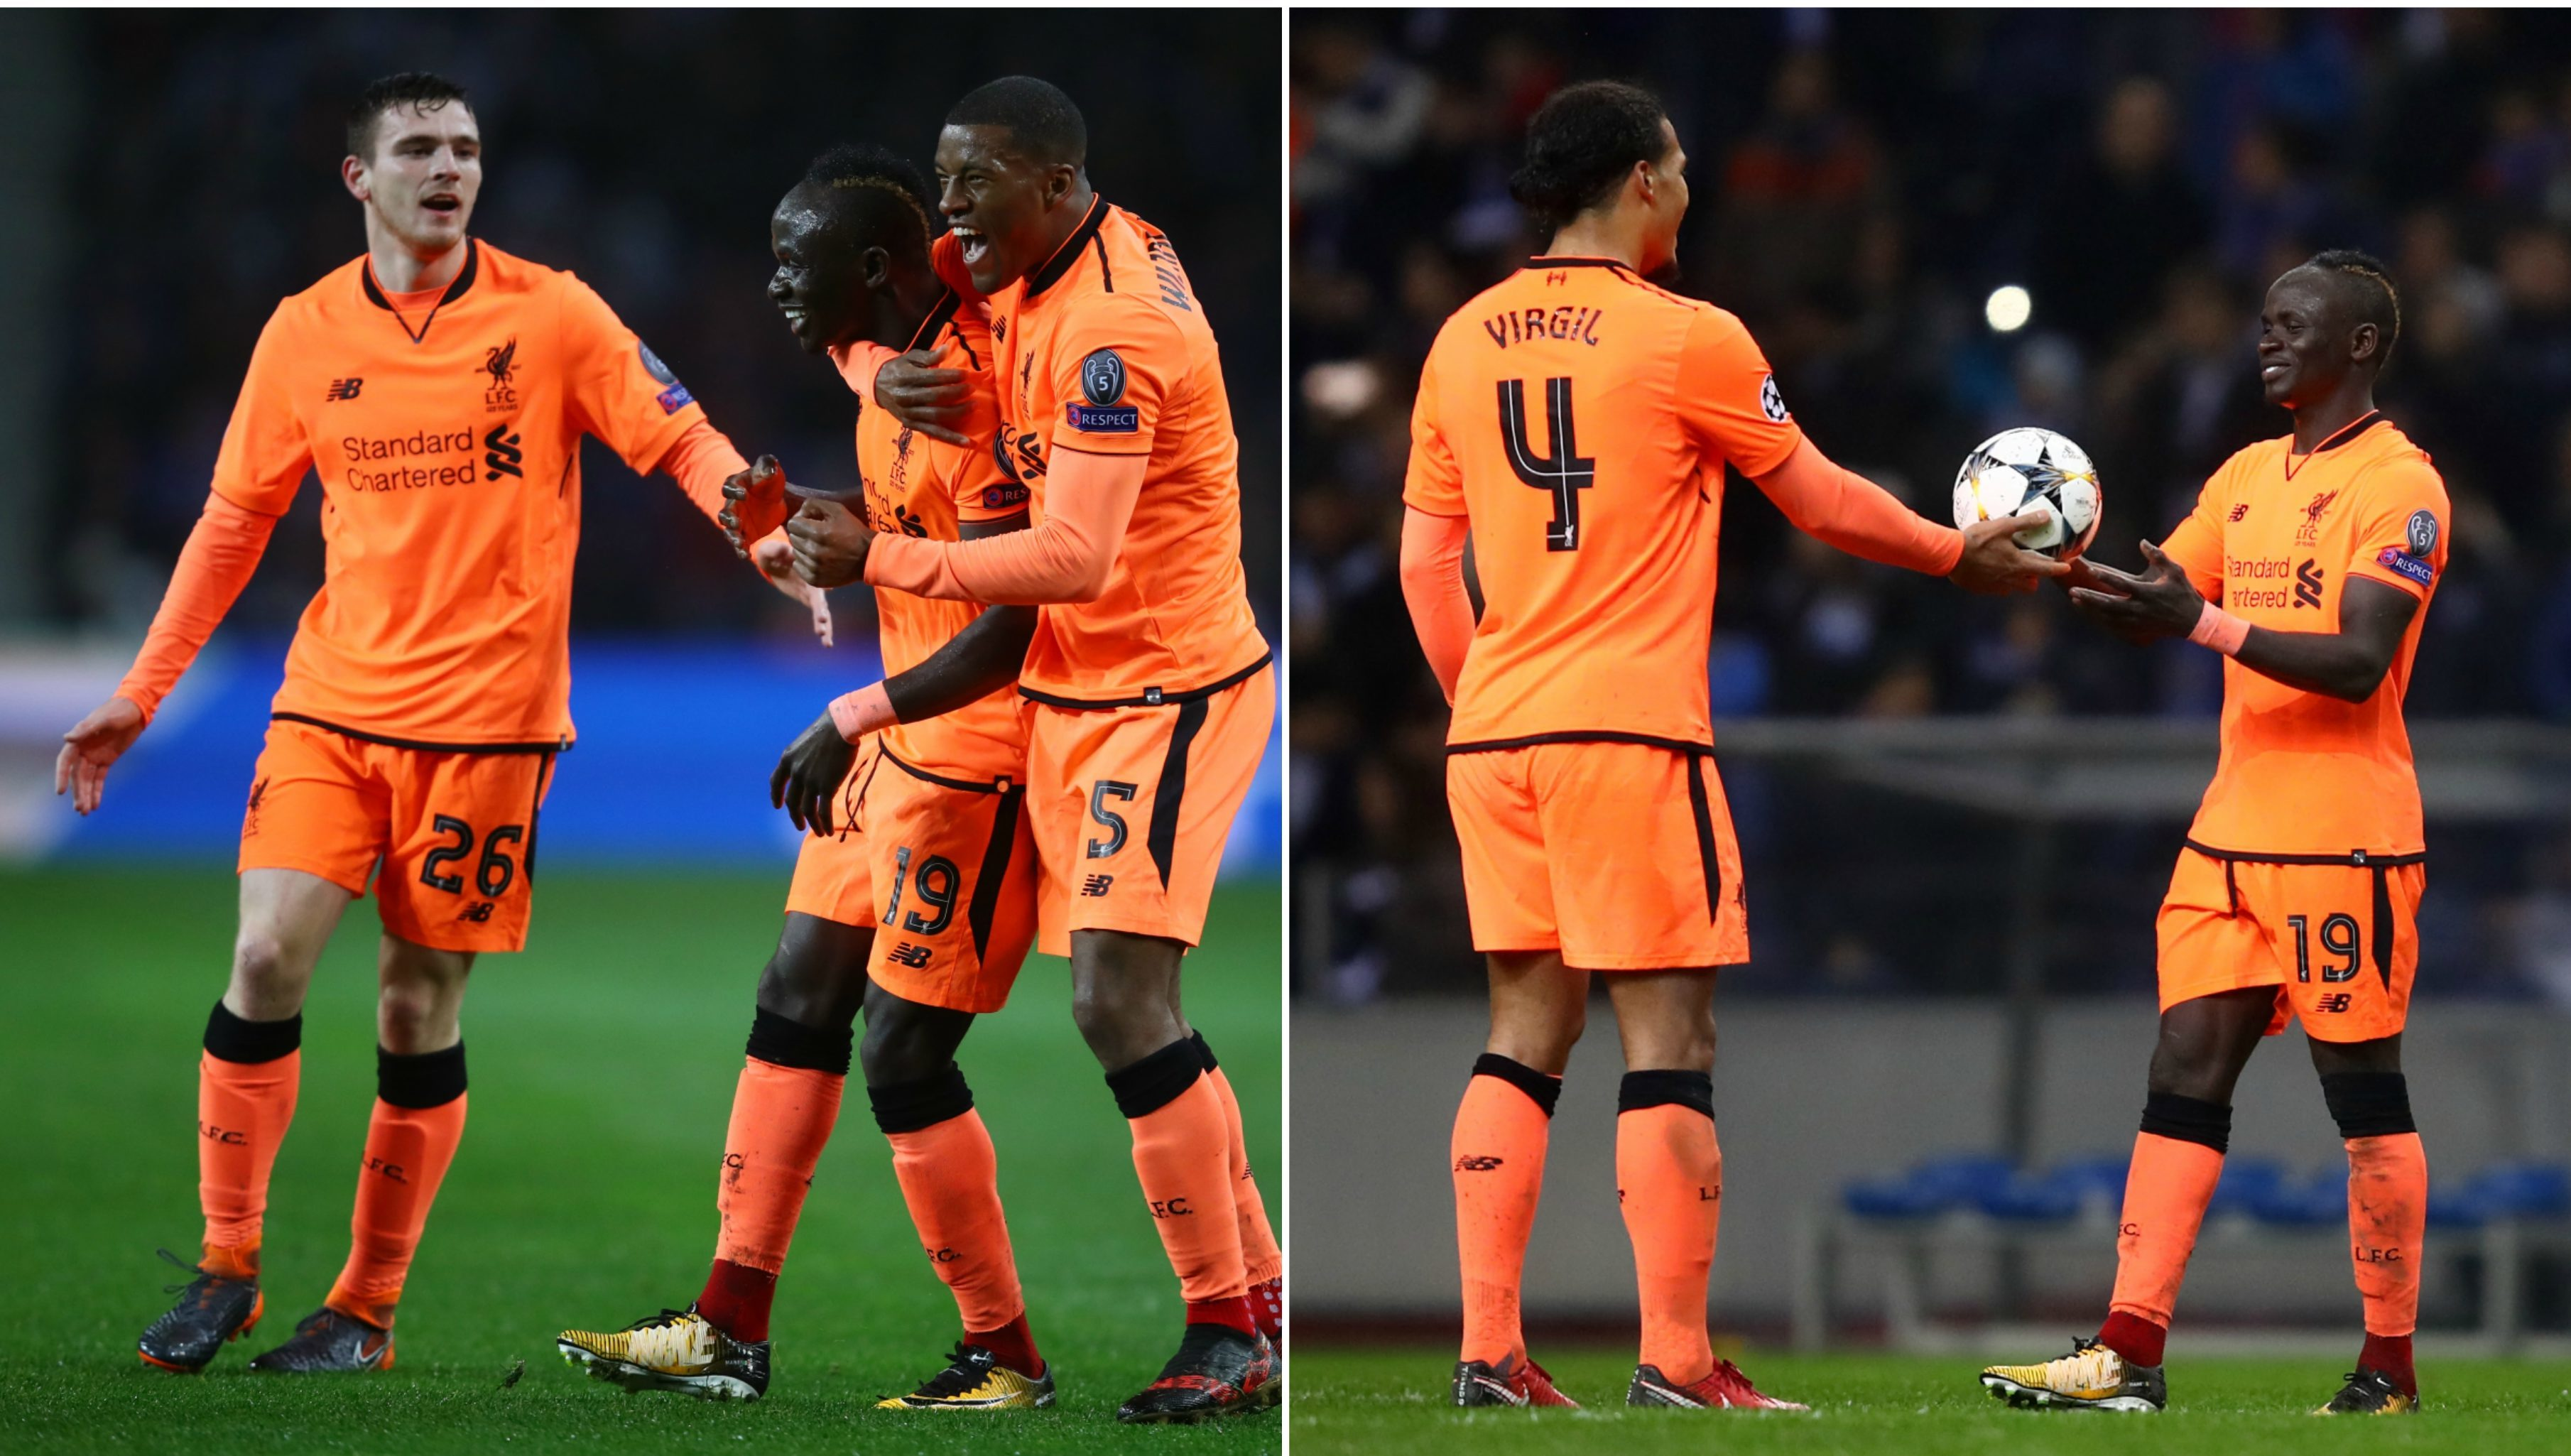 Andy Robertson claimed the match ball for team mate Sadio Mane after the clash with FC Porto